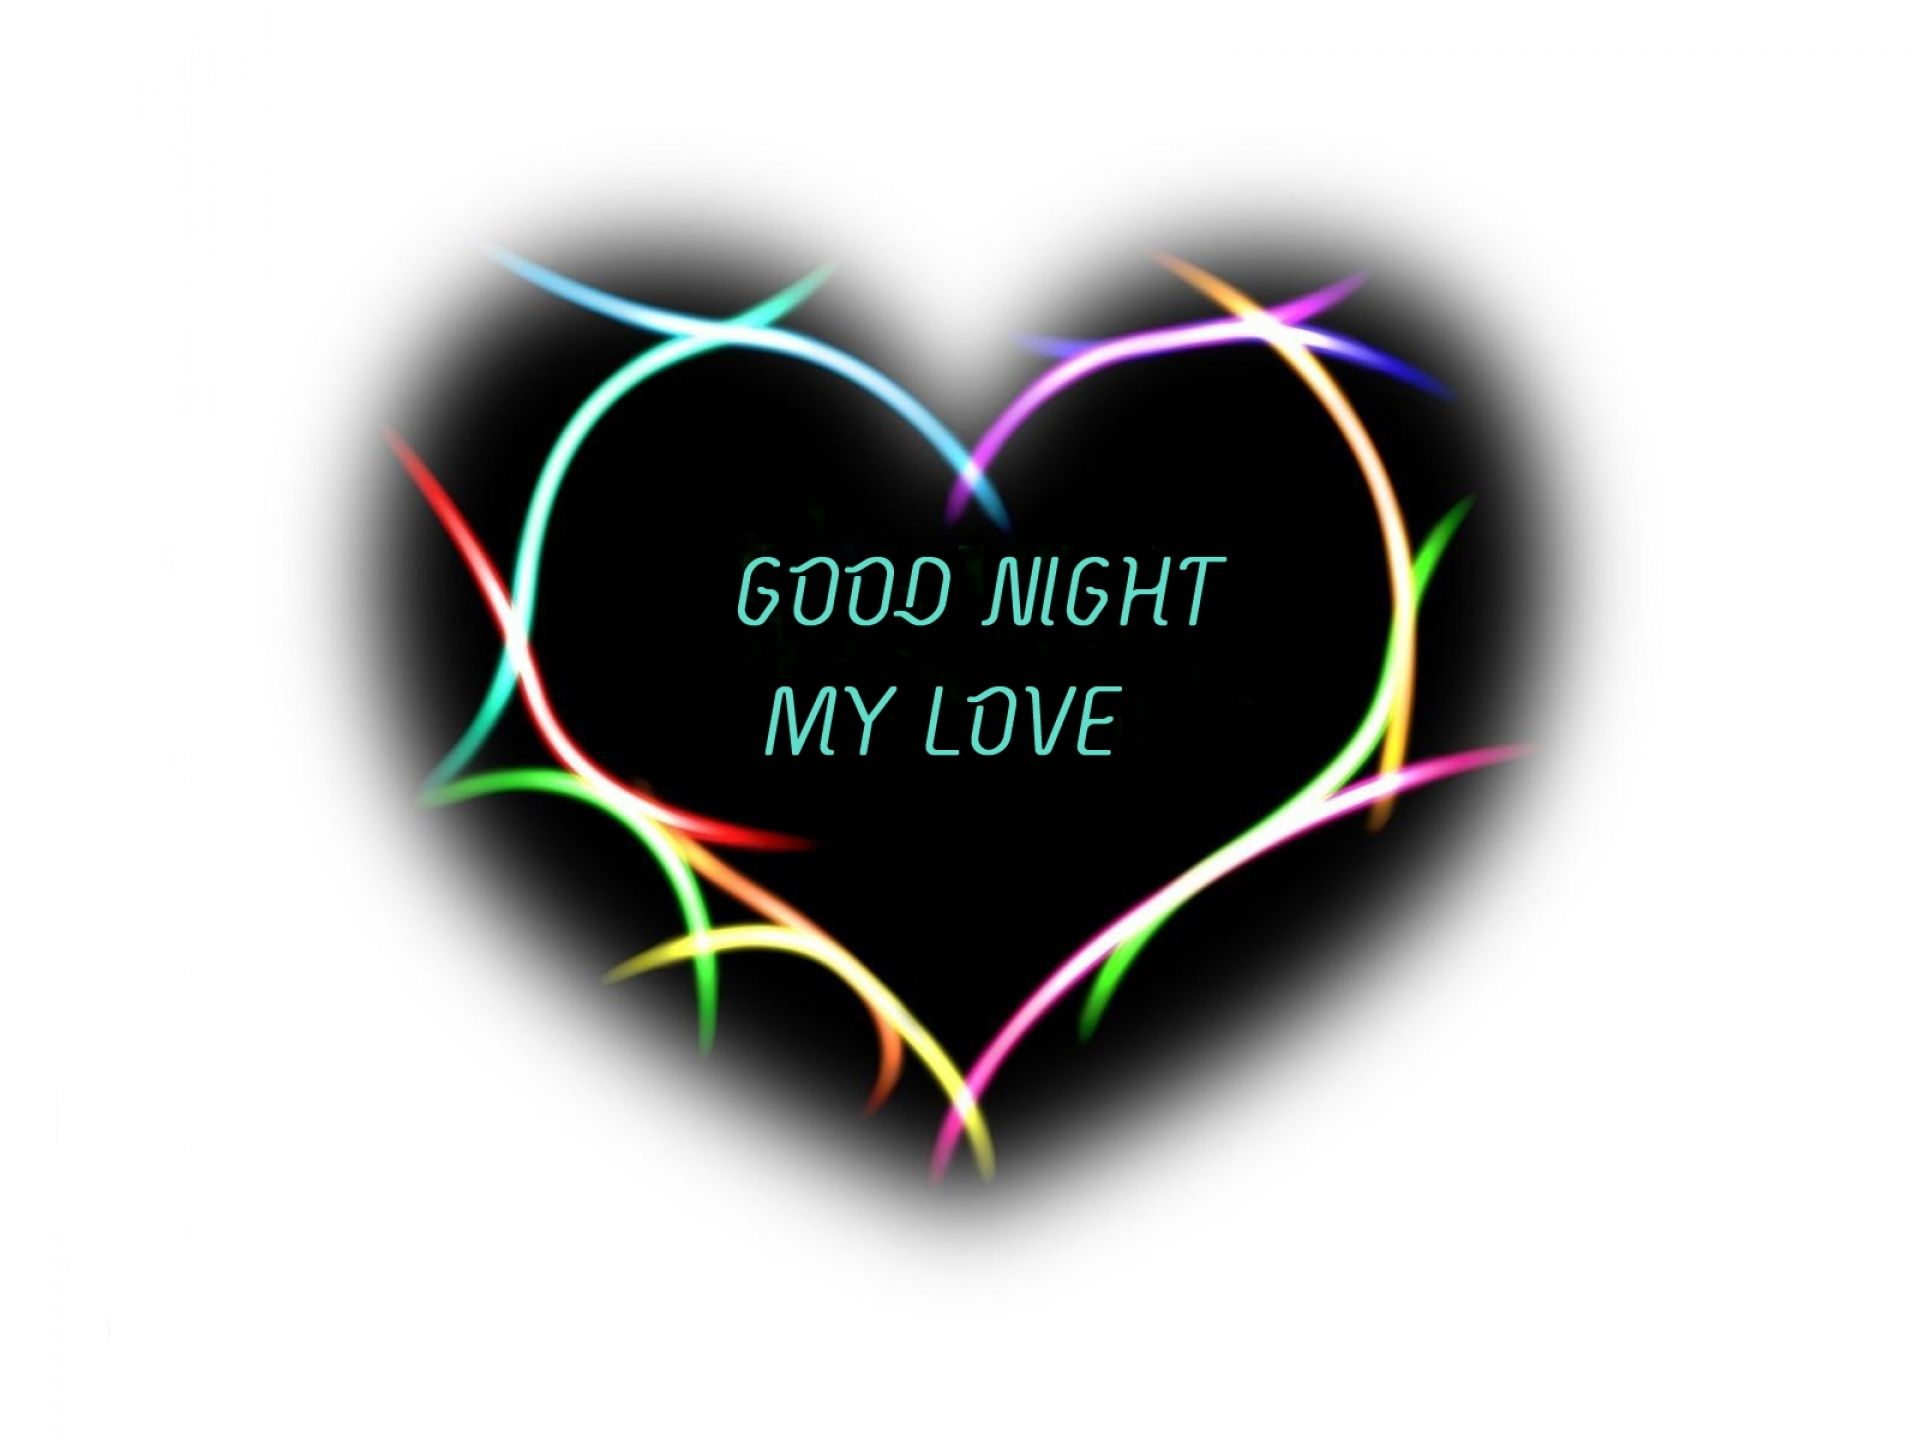 Good Night Love Heart Images Hd Wallpapers 1080p Love